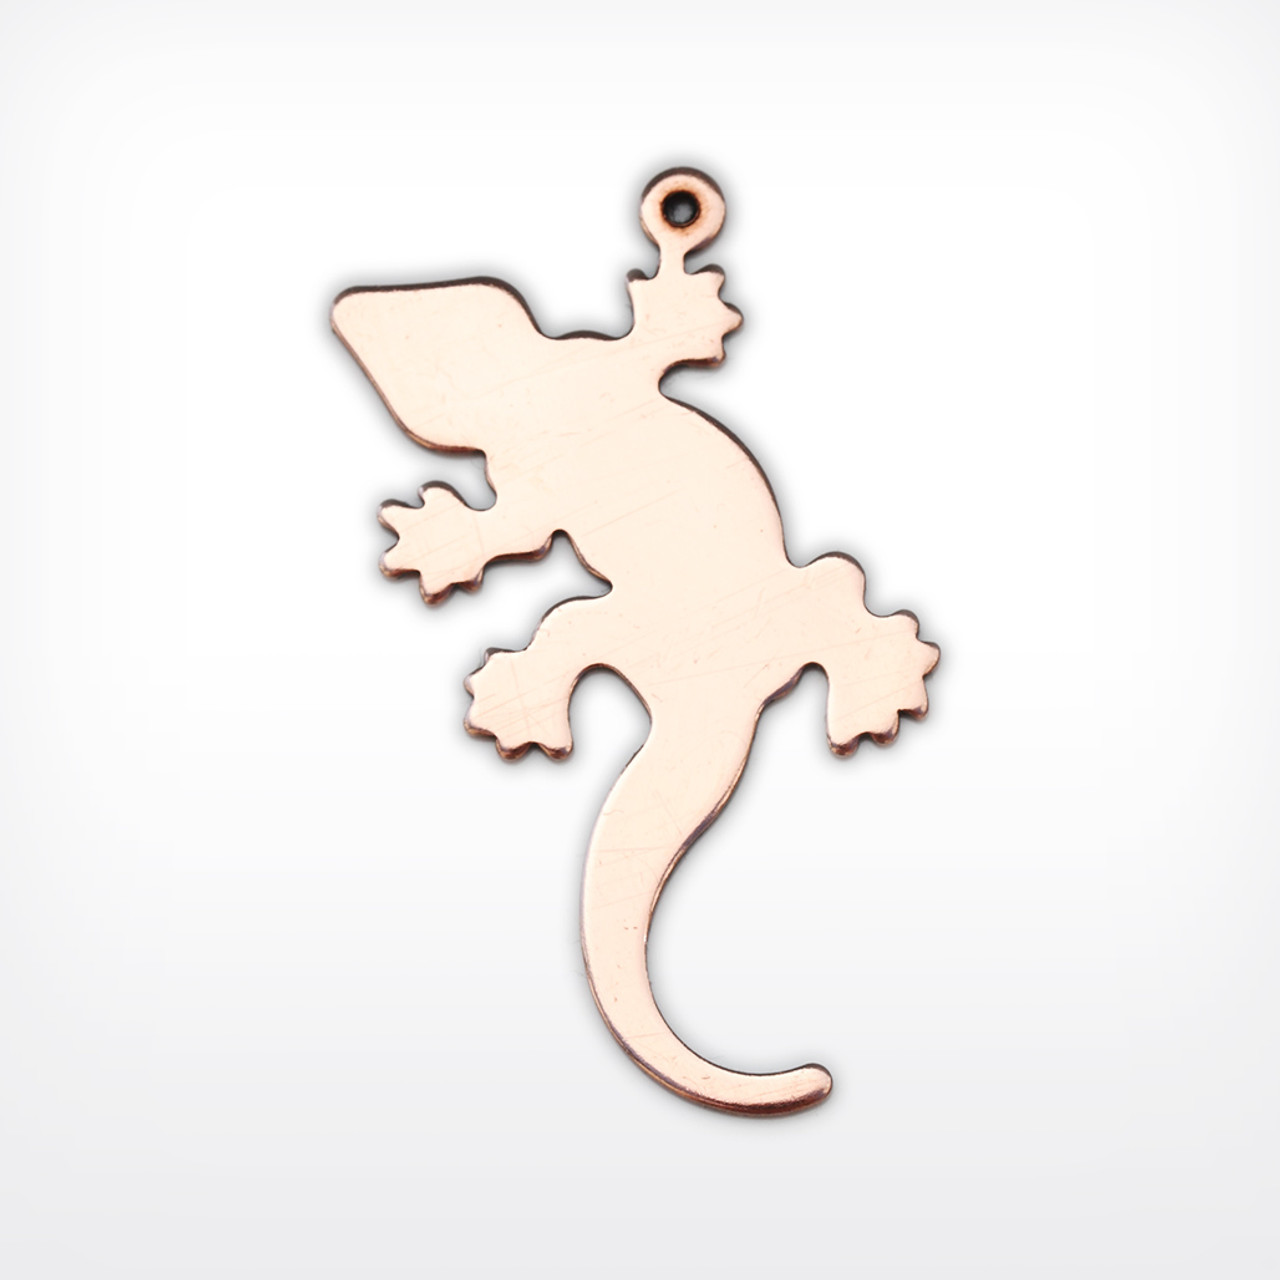 Copper Blank Gecko Stamped Shape for Enamelling & Other Crafts